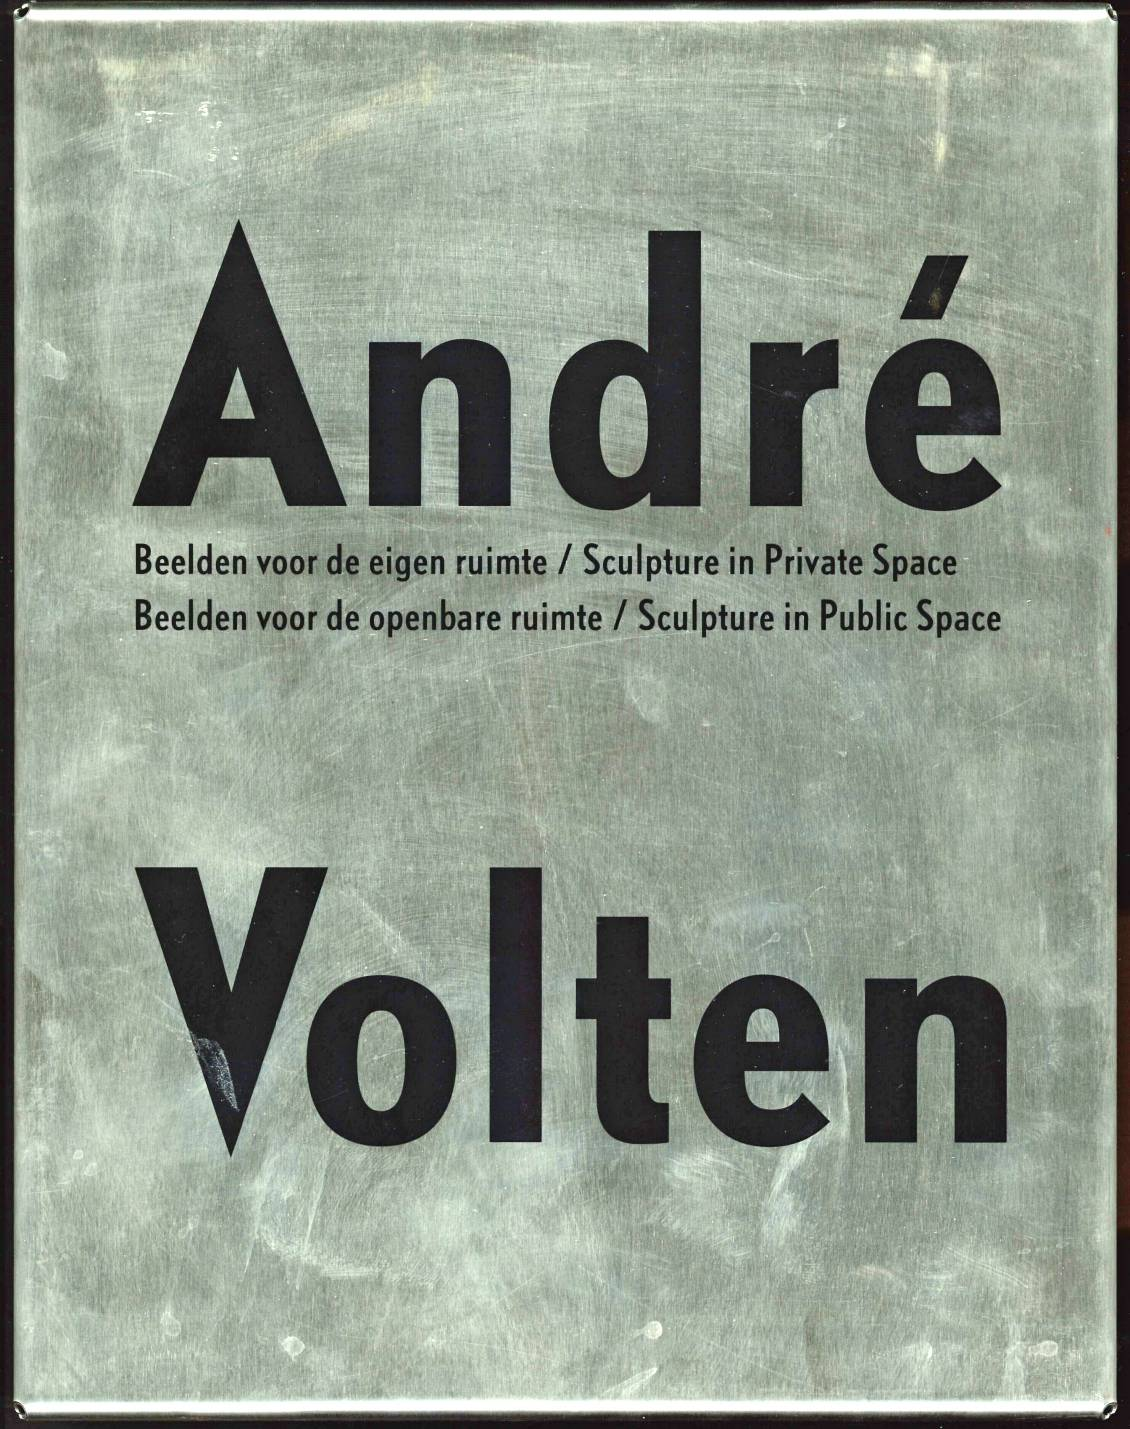 André Volten; Images for own space / Images for public space, 2000